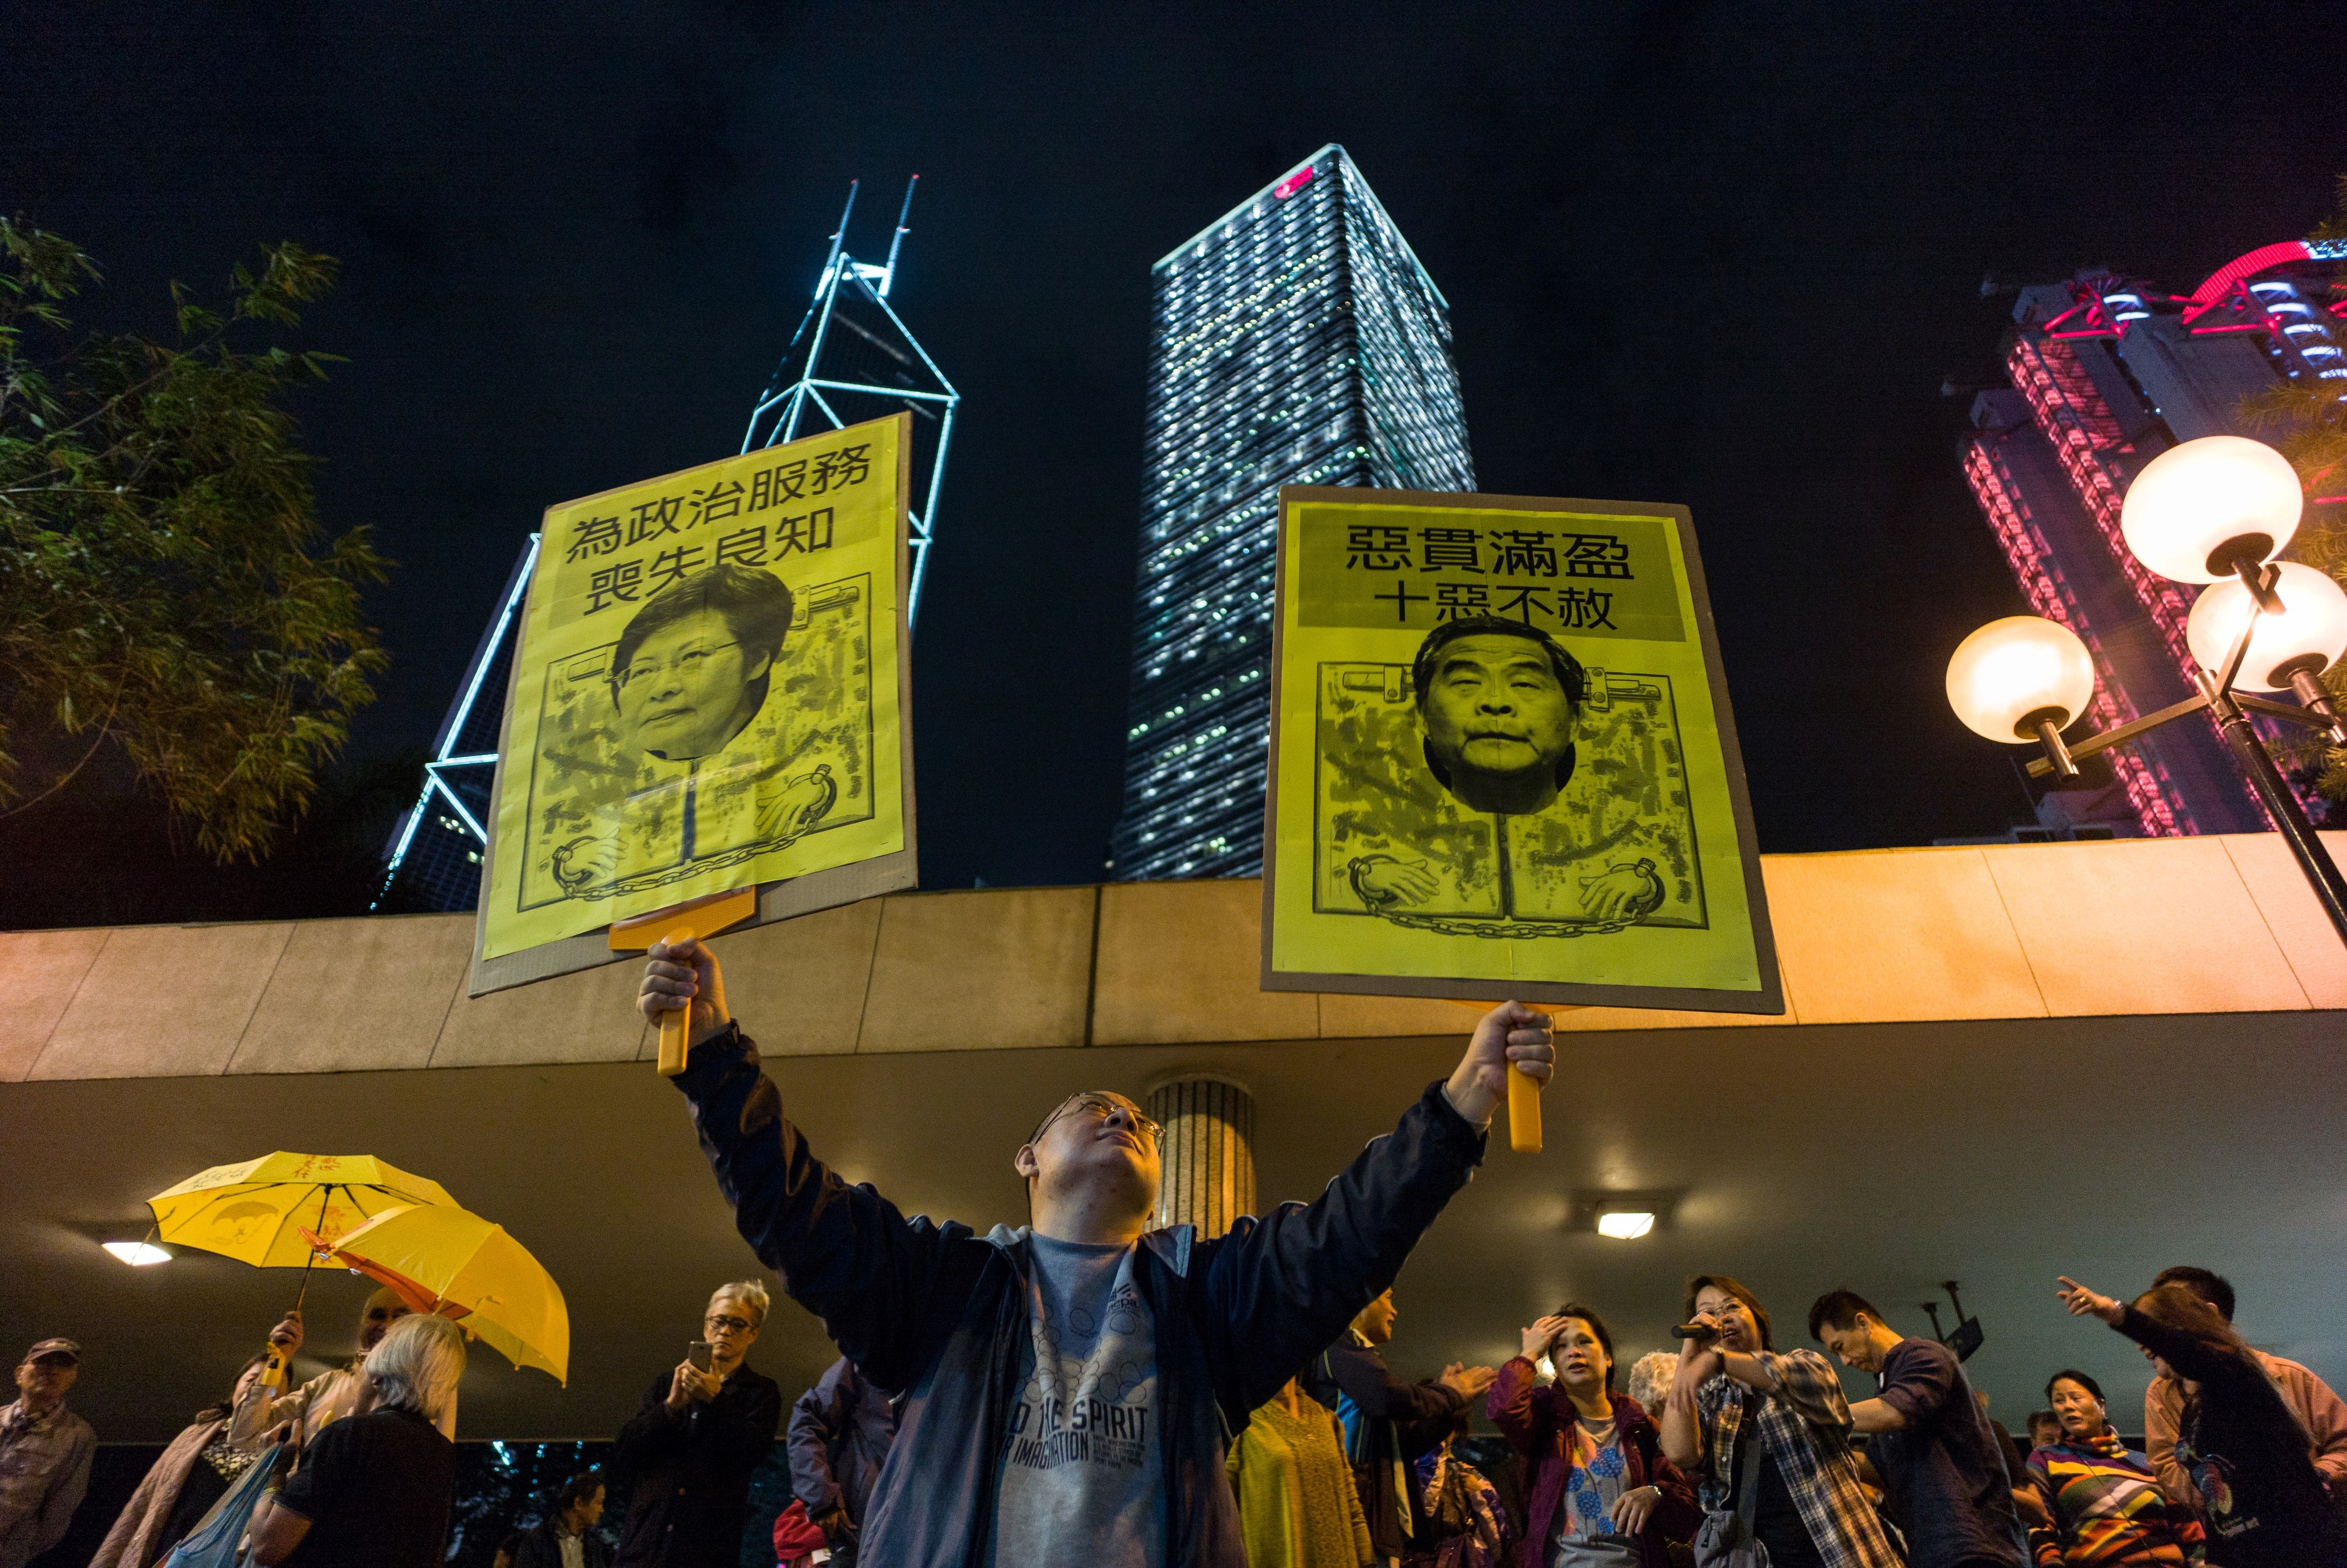 A pro-democracy protester holds up placards featuring Hong Kong's former Chief Secretary Carrie Lam and Chief Executive Leung Chun-ying during a rally in Hong Kong on Dec. 11, 2016